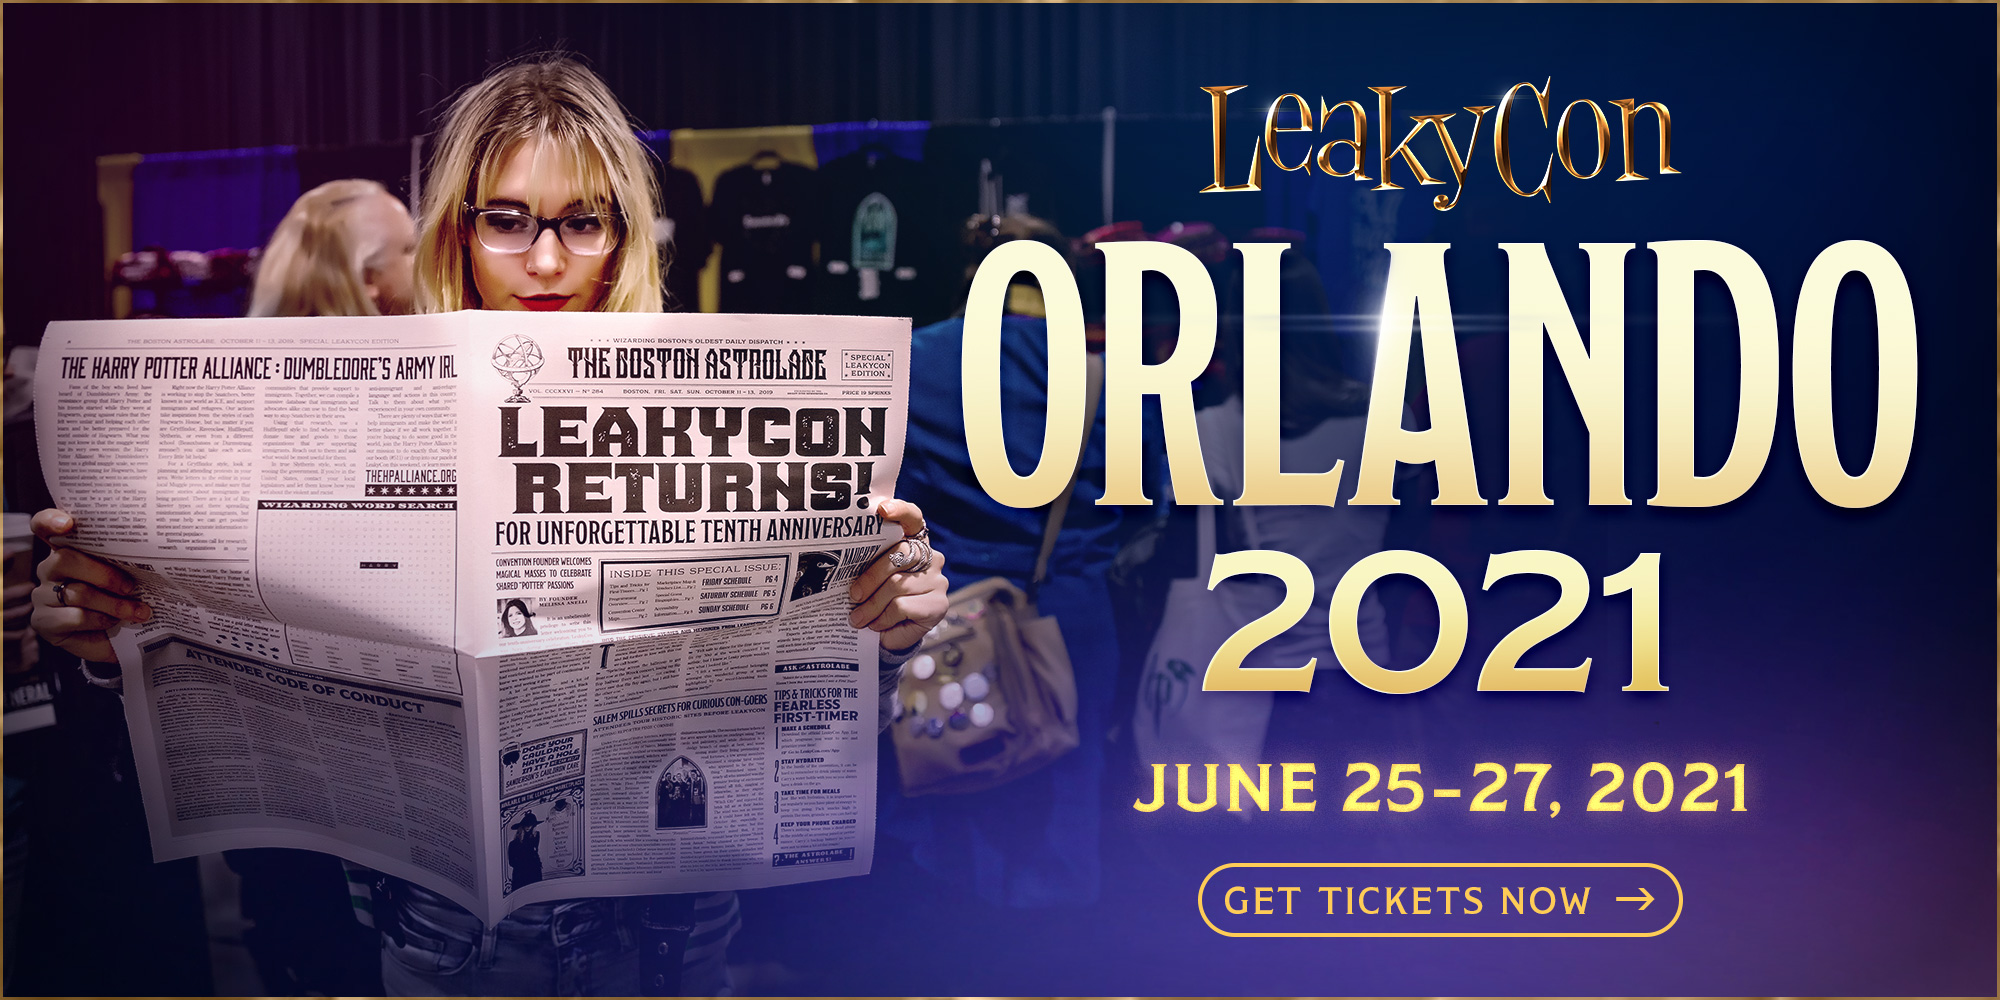 LEAKYCON ORLANDO: June 25–27, 2021  Get Tickets Now!